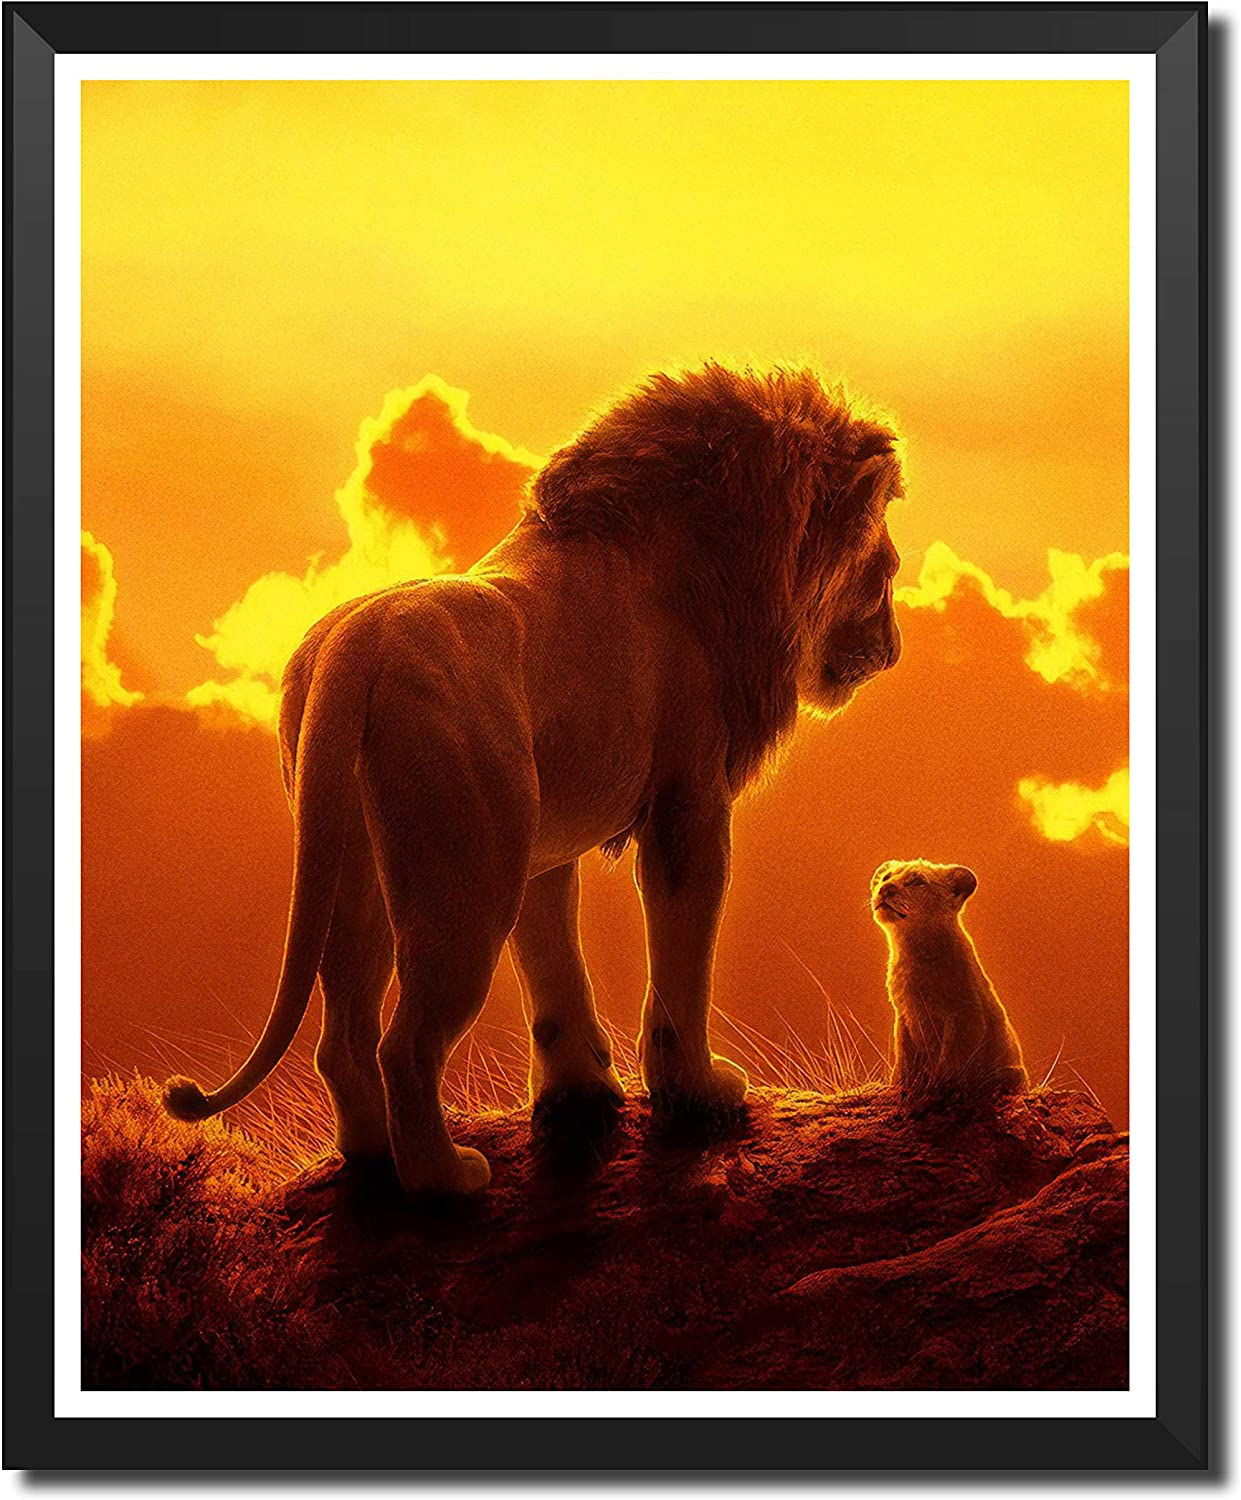 Yansang Lion King Movie Art Prints Wall Art Picture for Bedroom Home Decor Canvas Print Poster,8 x 10 Inches,No Frame